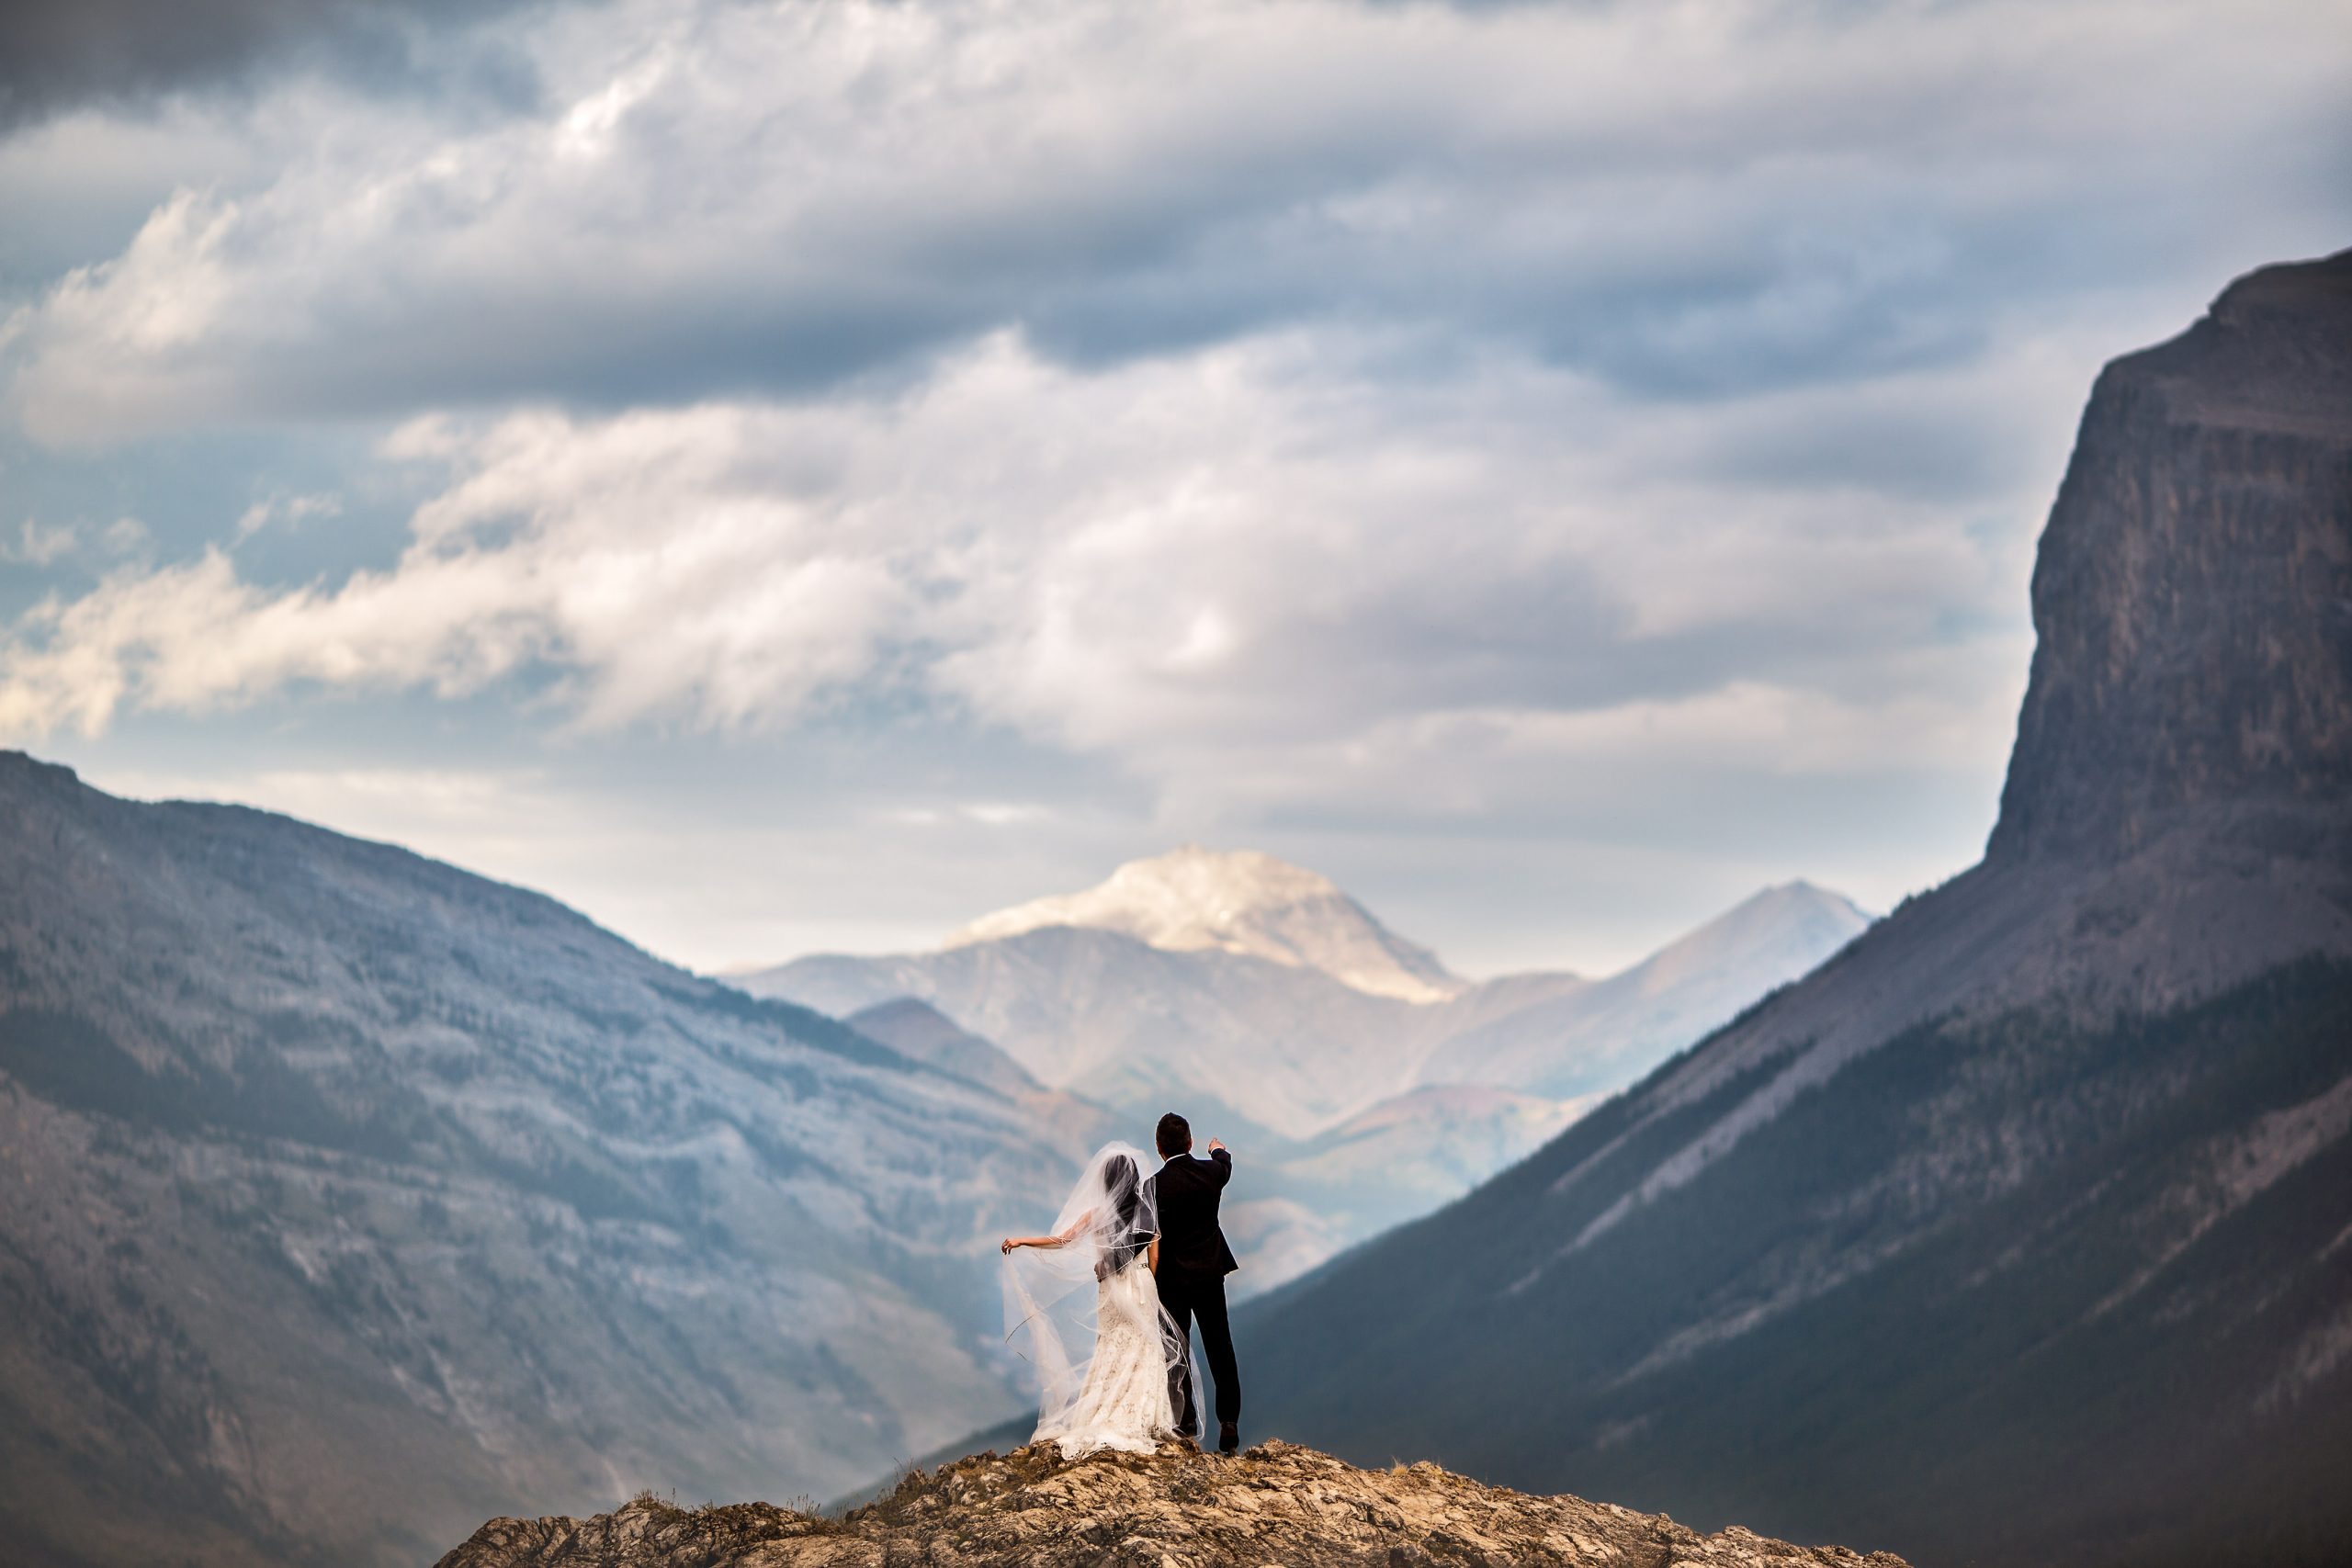 Bride and groom stand together looking at mountain range